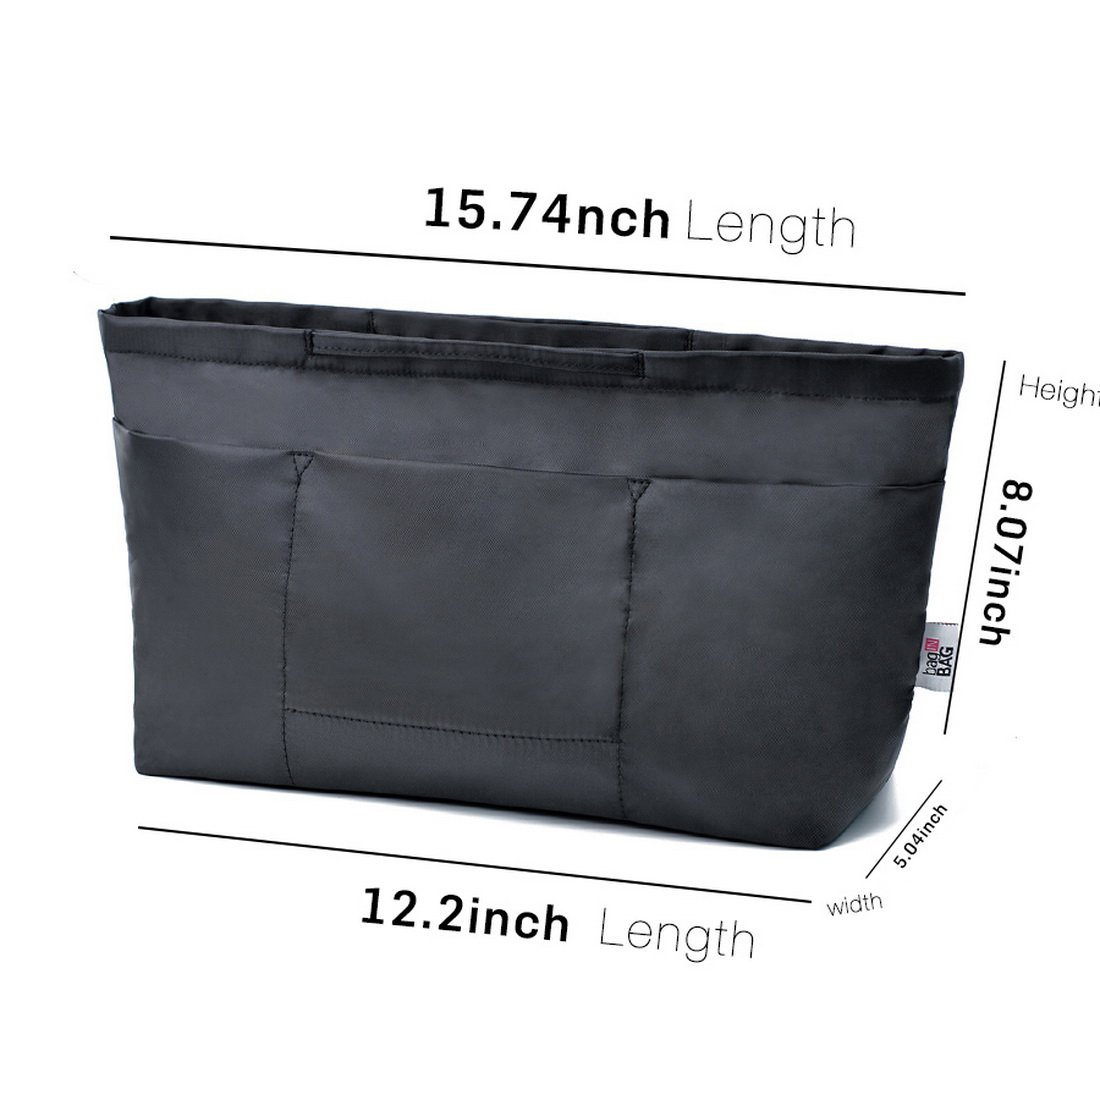 13 Pockets Purse Organizer Tote Insert Liner Bag Anti-Theft Keychain(M,Black) by BES CHAN (Image #5)